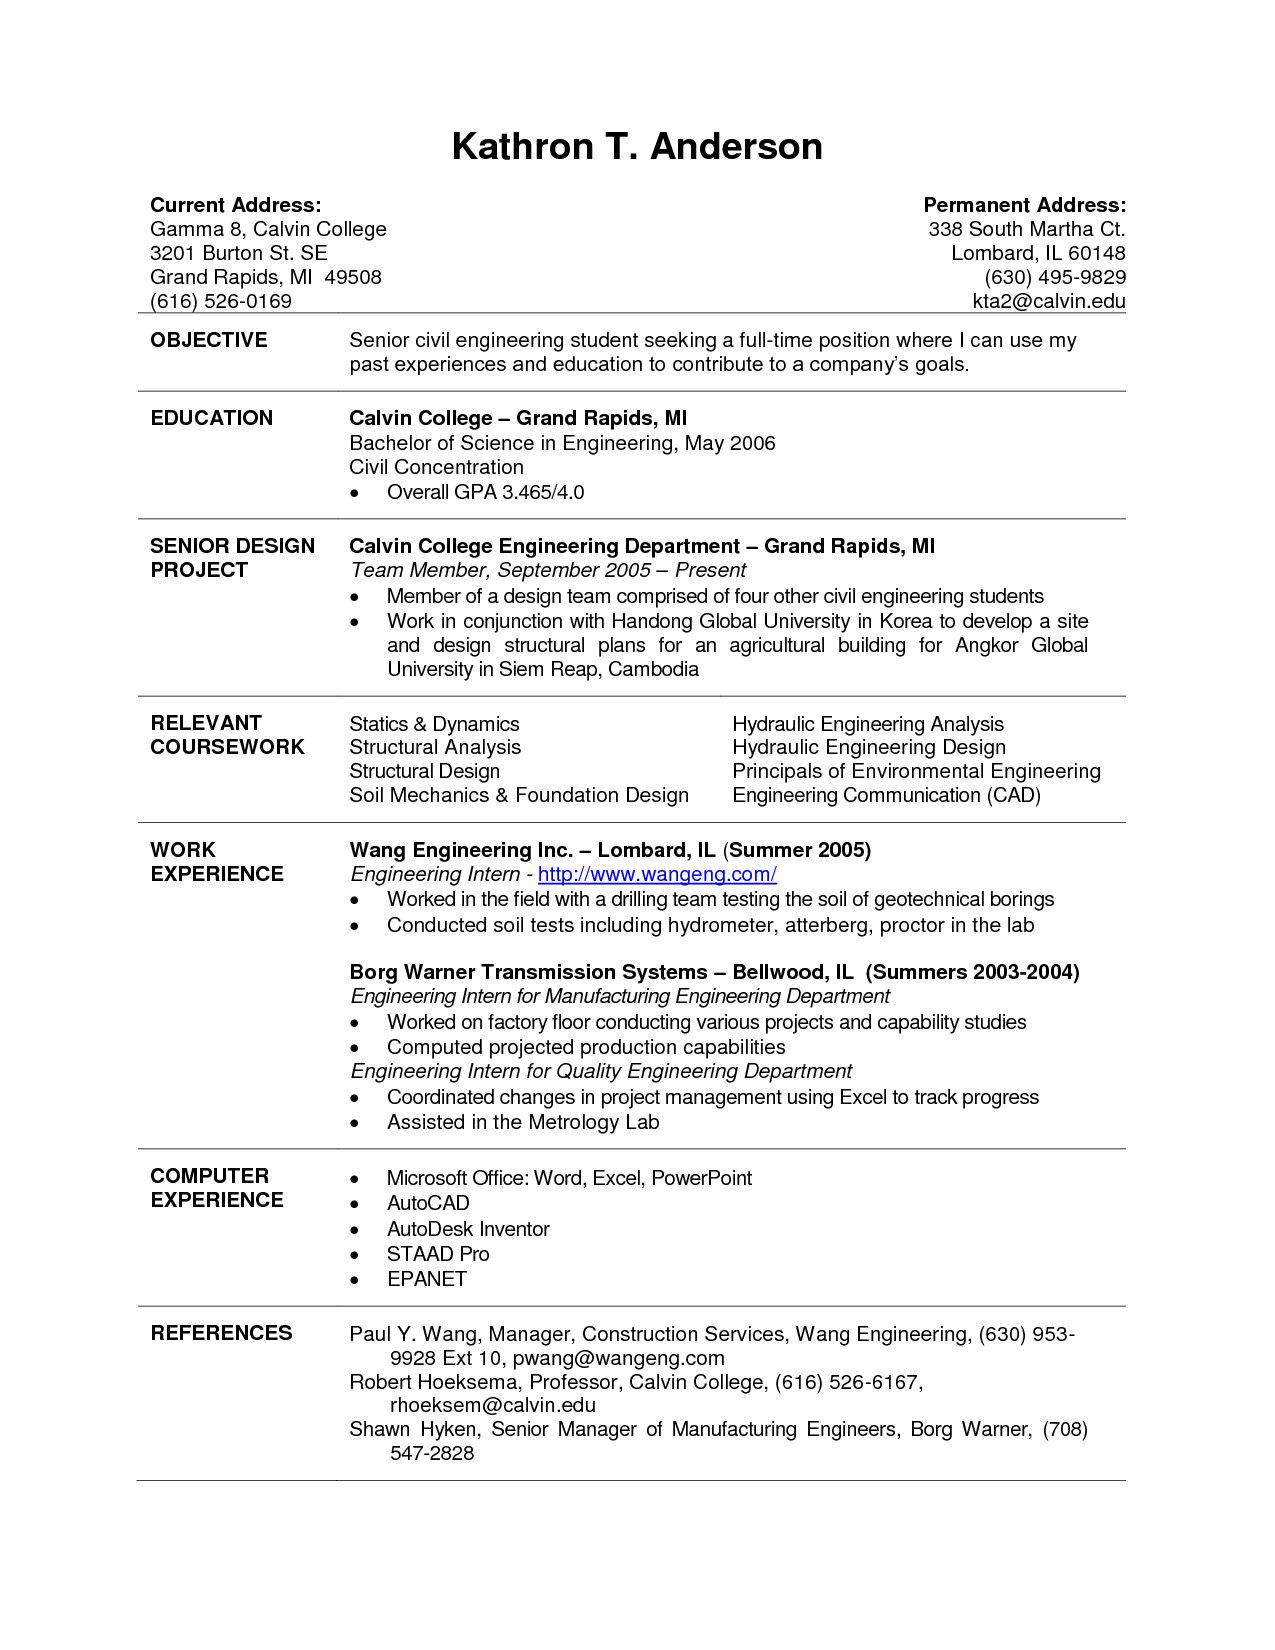 current college student resume template examples playing music civil engineering profile Resume Current College Student Resume